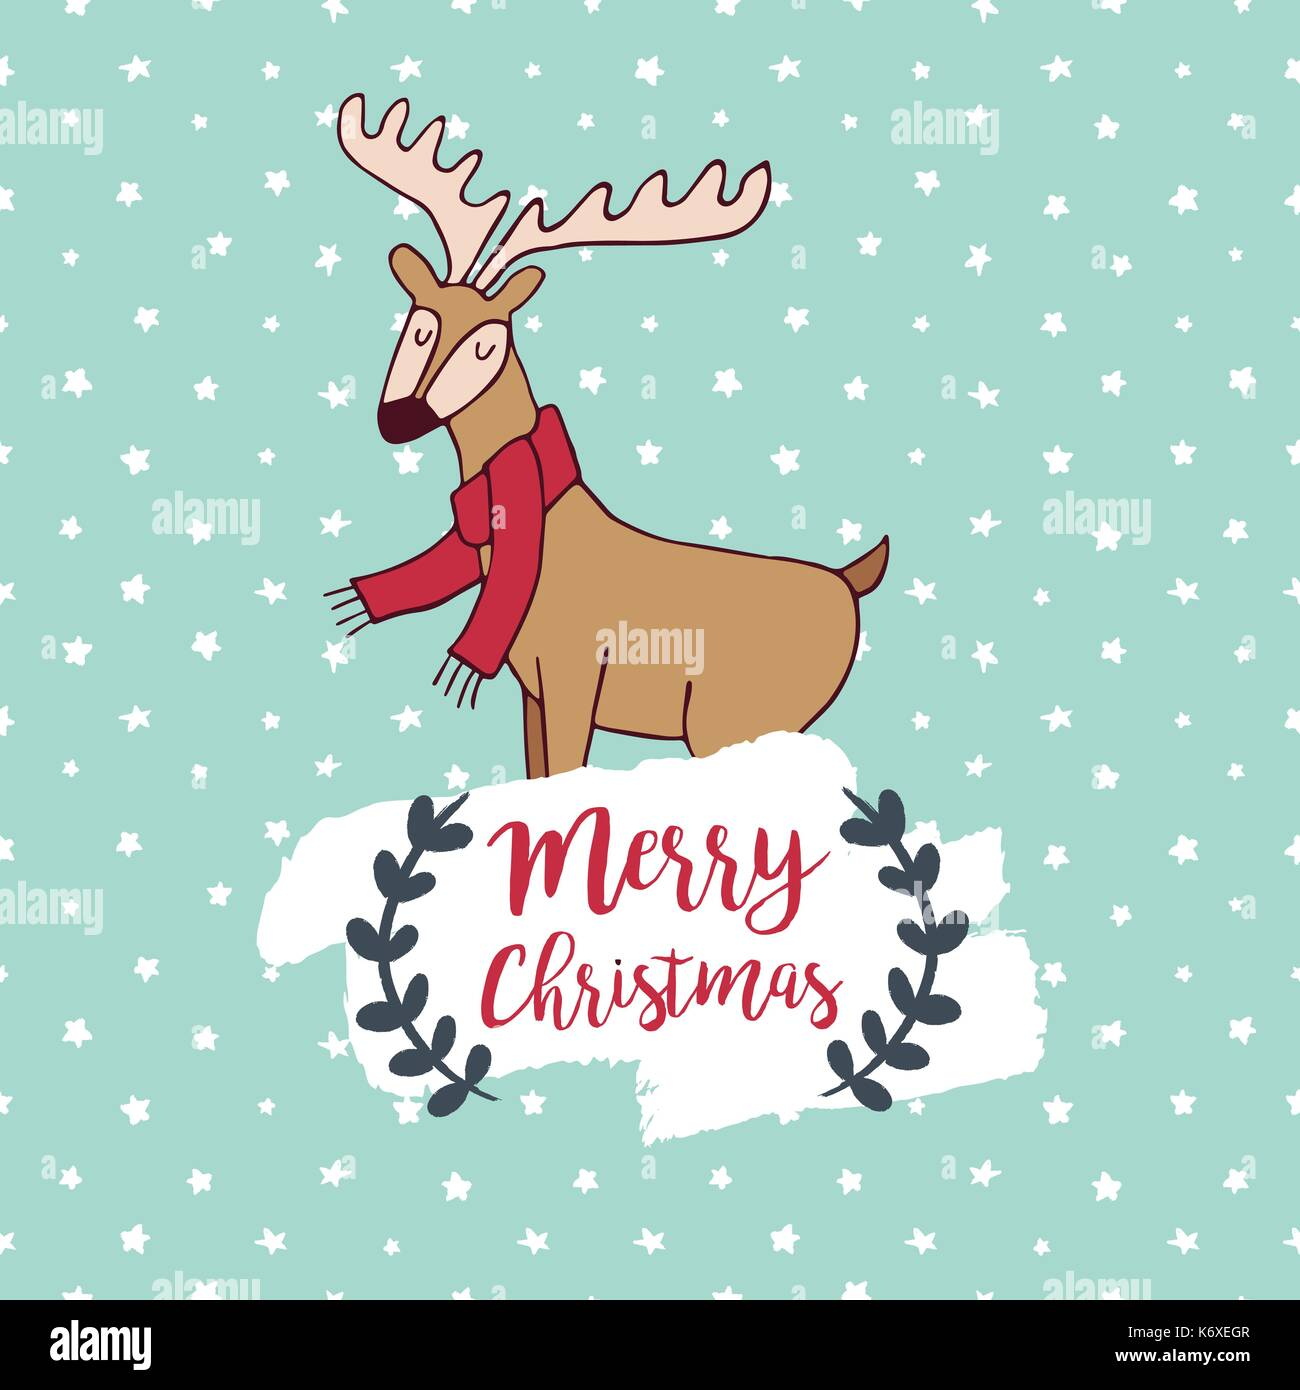 Merry Christmas Hand Drawn Reindeer Greeting Card Illustration Cute Deer Cartoon With Scarf Handwritten Typography Quote And Holiday Background EPS